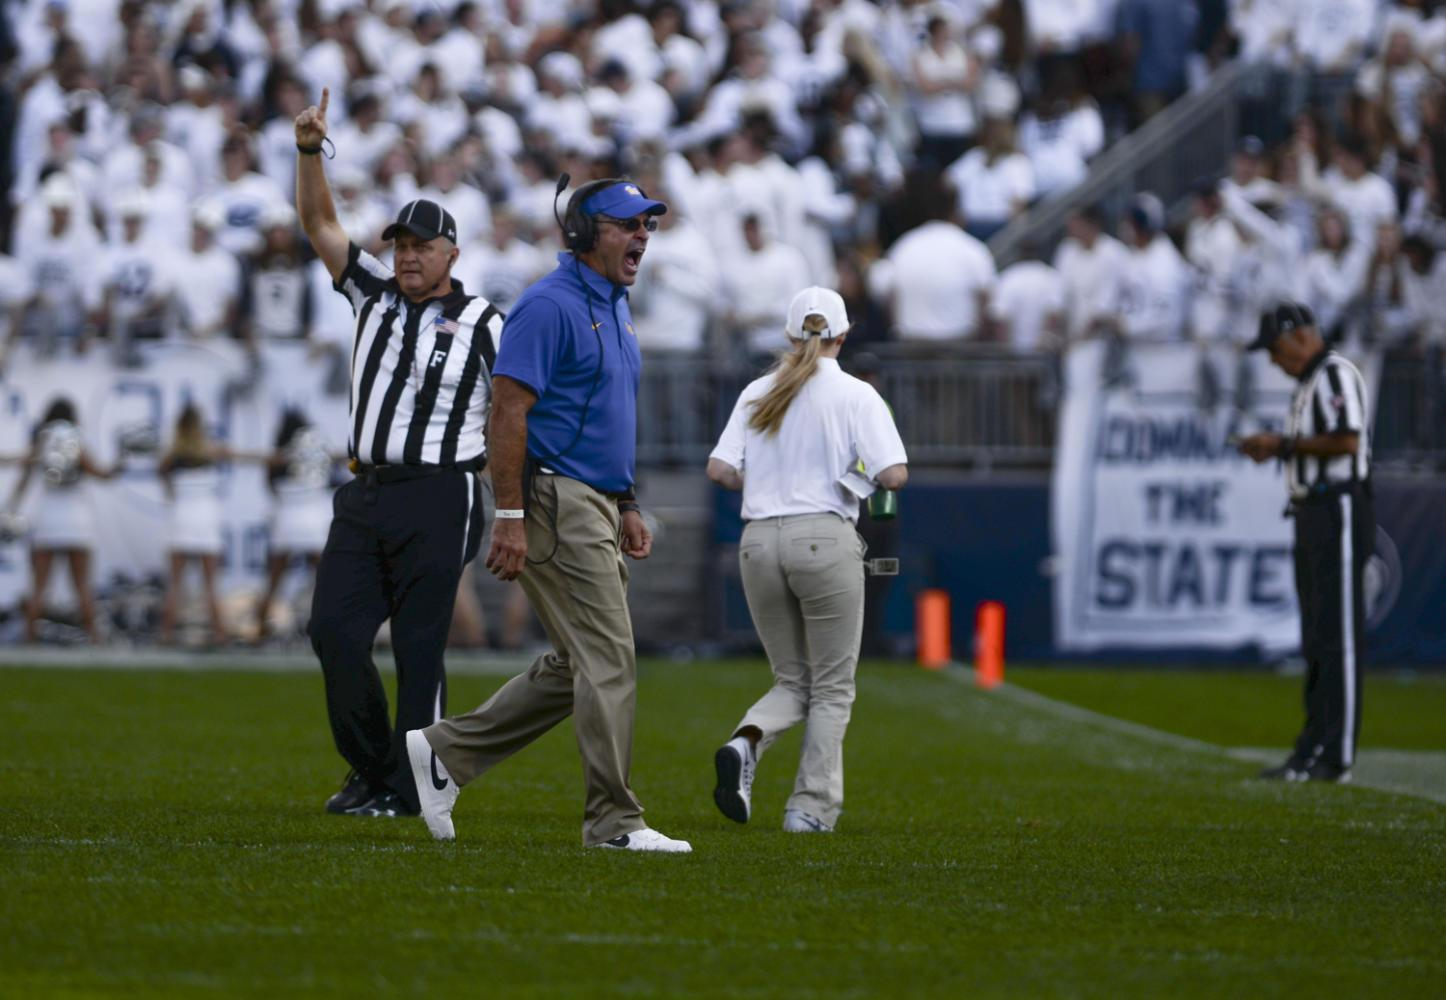 Coach Pat Narduzzi yells as he approaches the sideline during Pitt's game against Penn State on Saturday. (Photo by Anna Bongardino | Assistant Visual Editor)